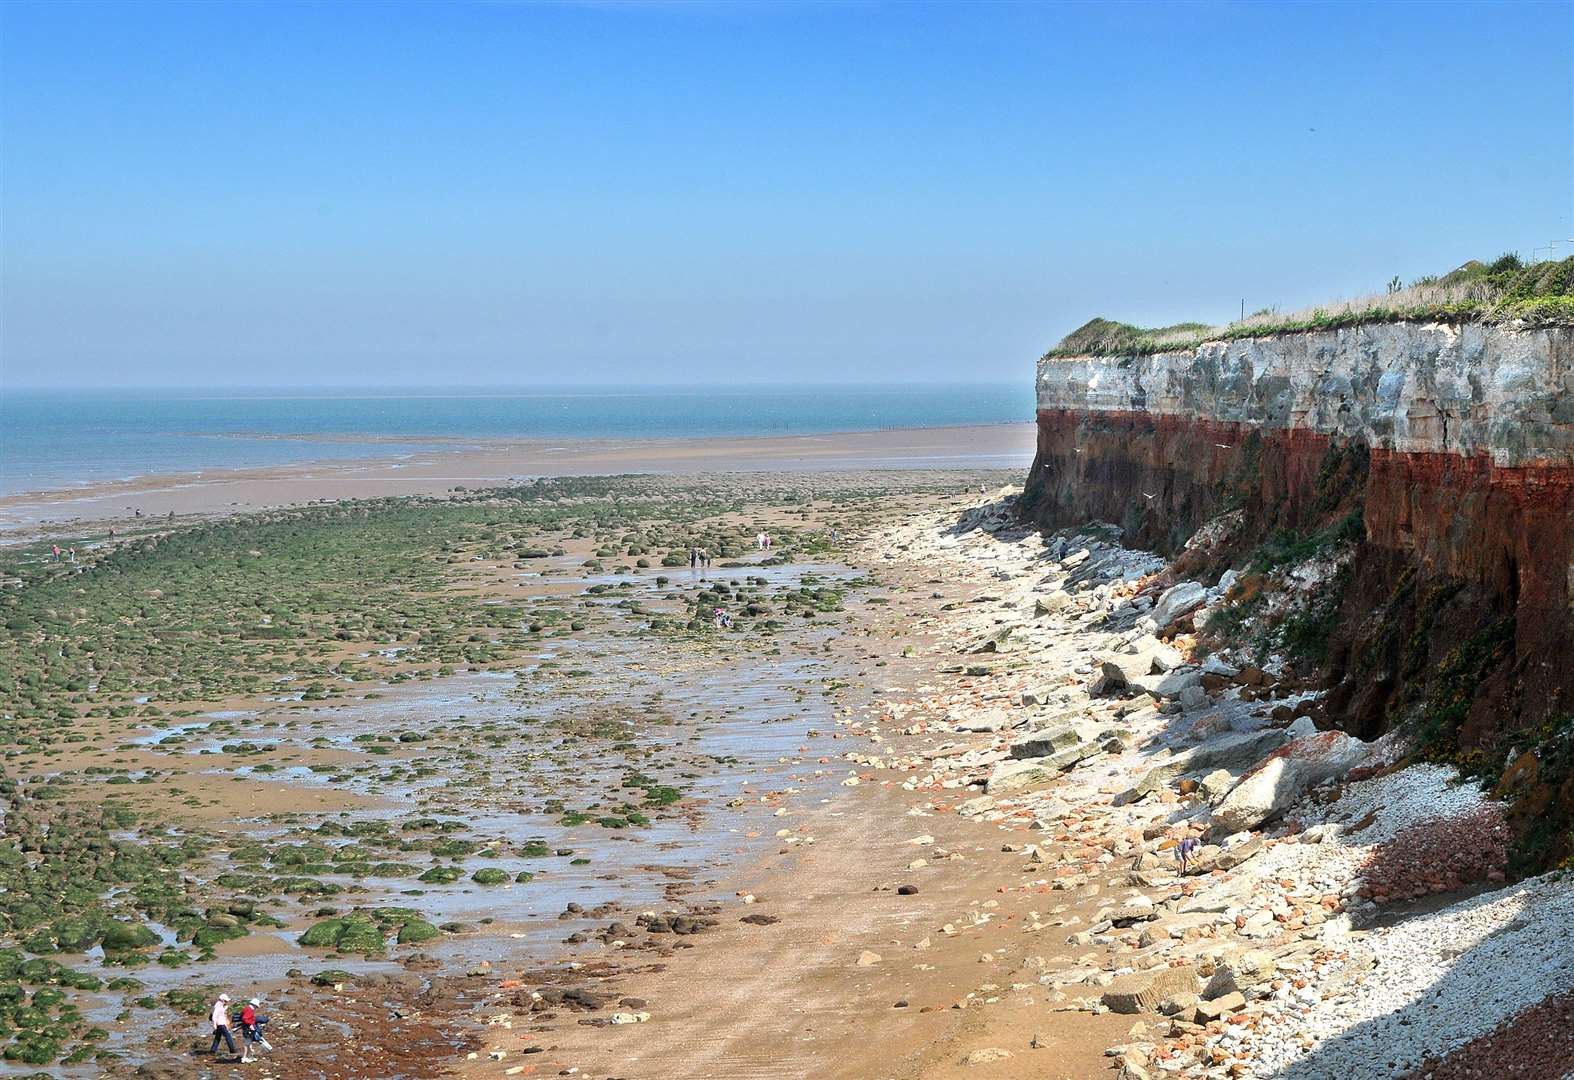 Plans to protect Hunstanton cliffs for the next 100 years set out